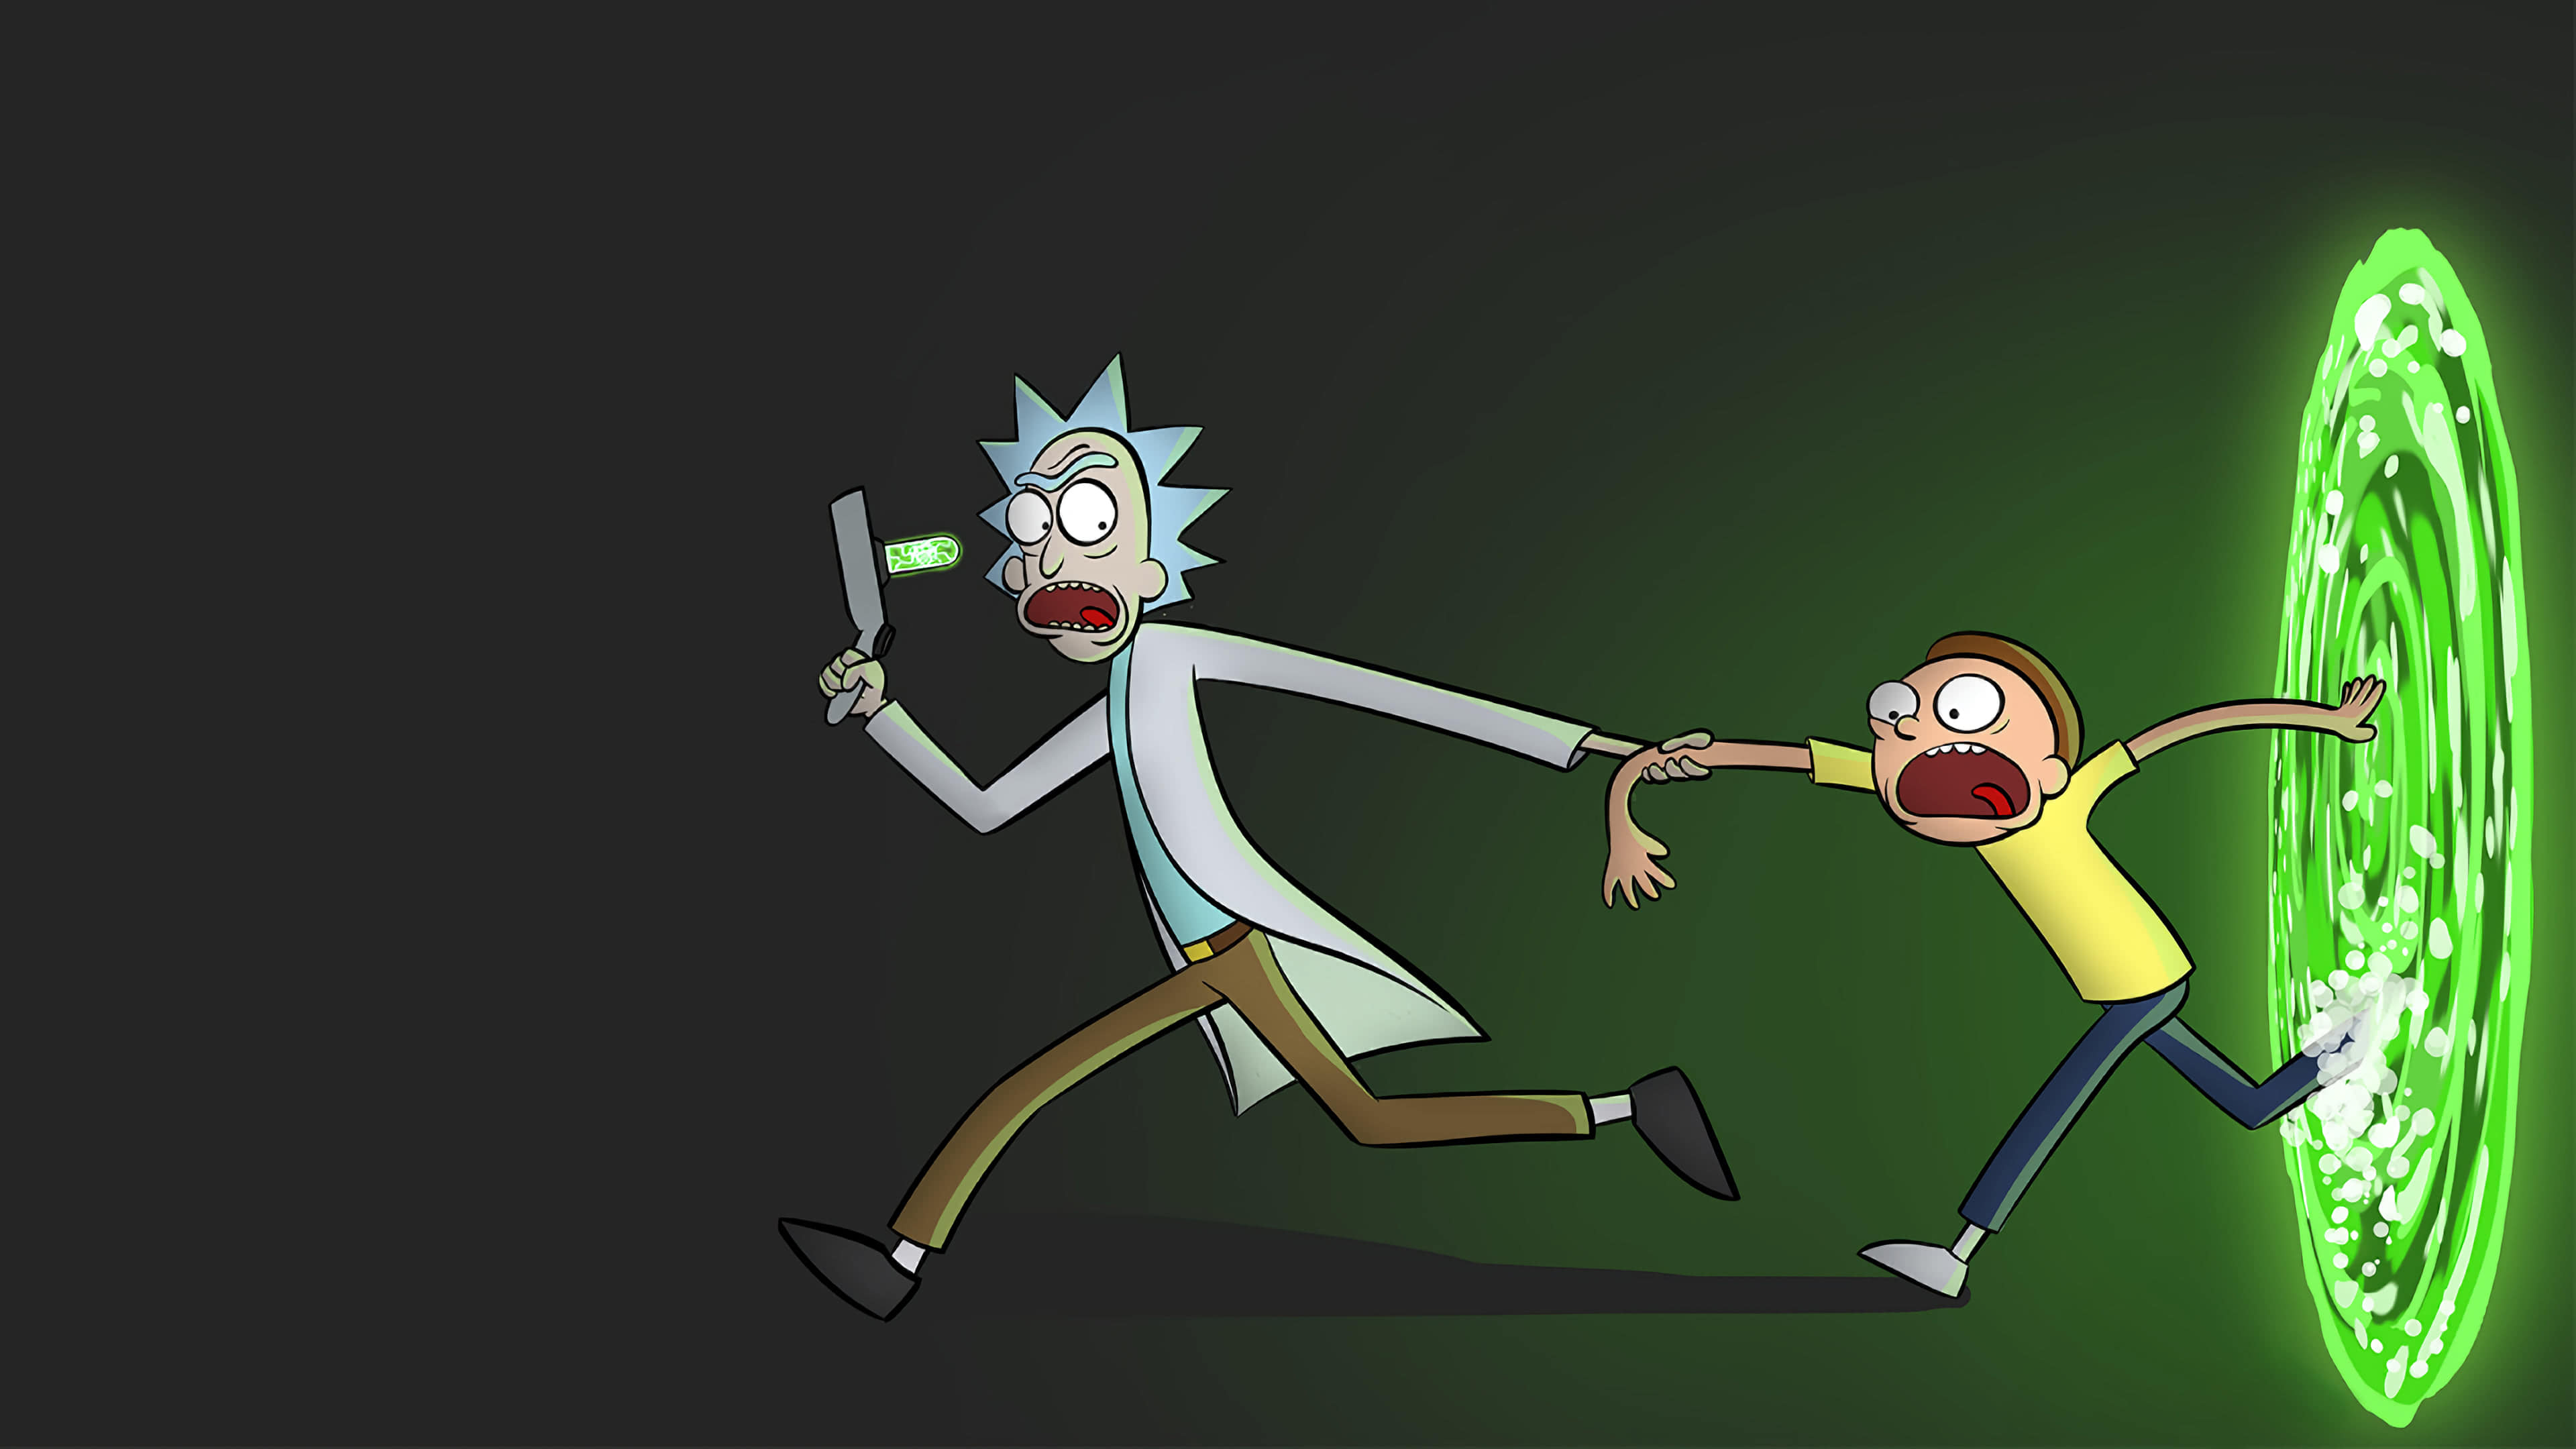 Rick And Morty Portal UHD 4K Wallpaper Pixelz 3840x2160